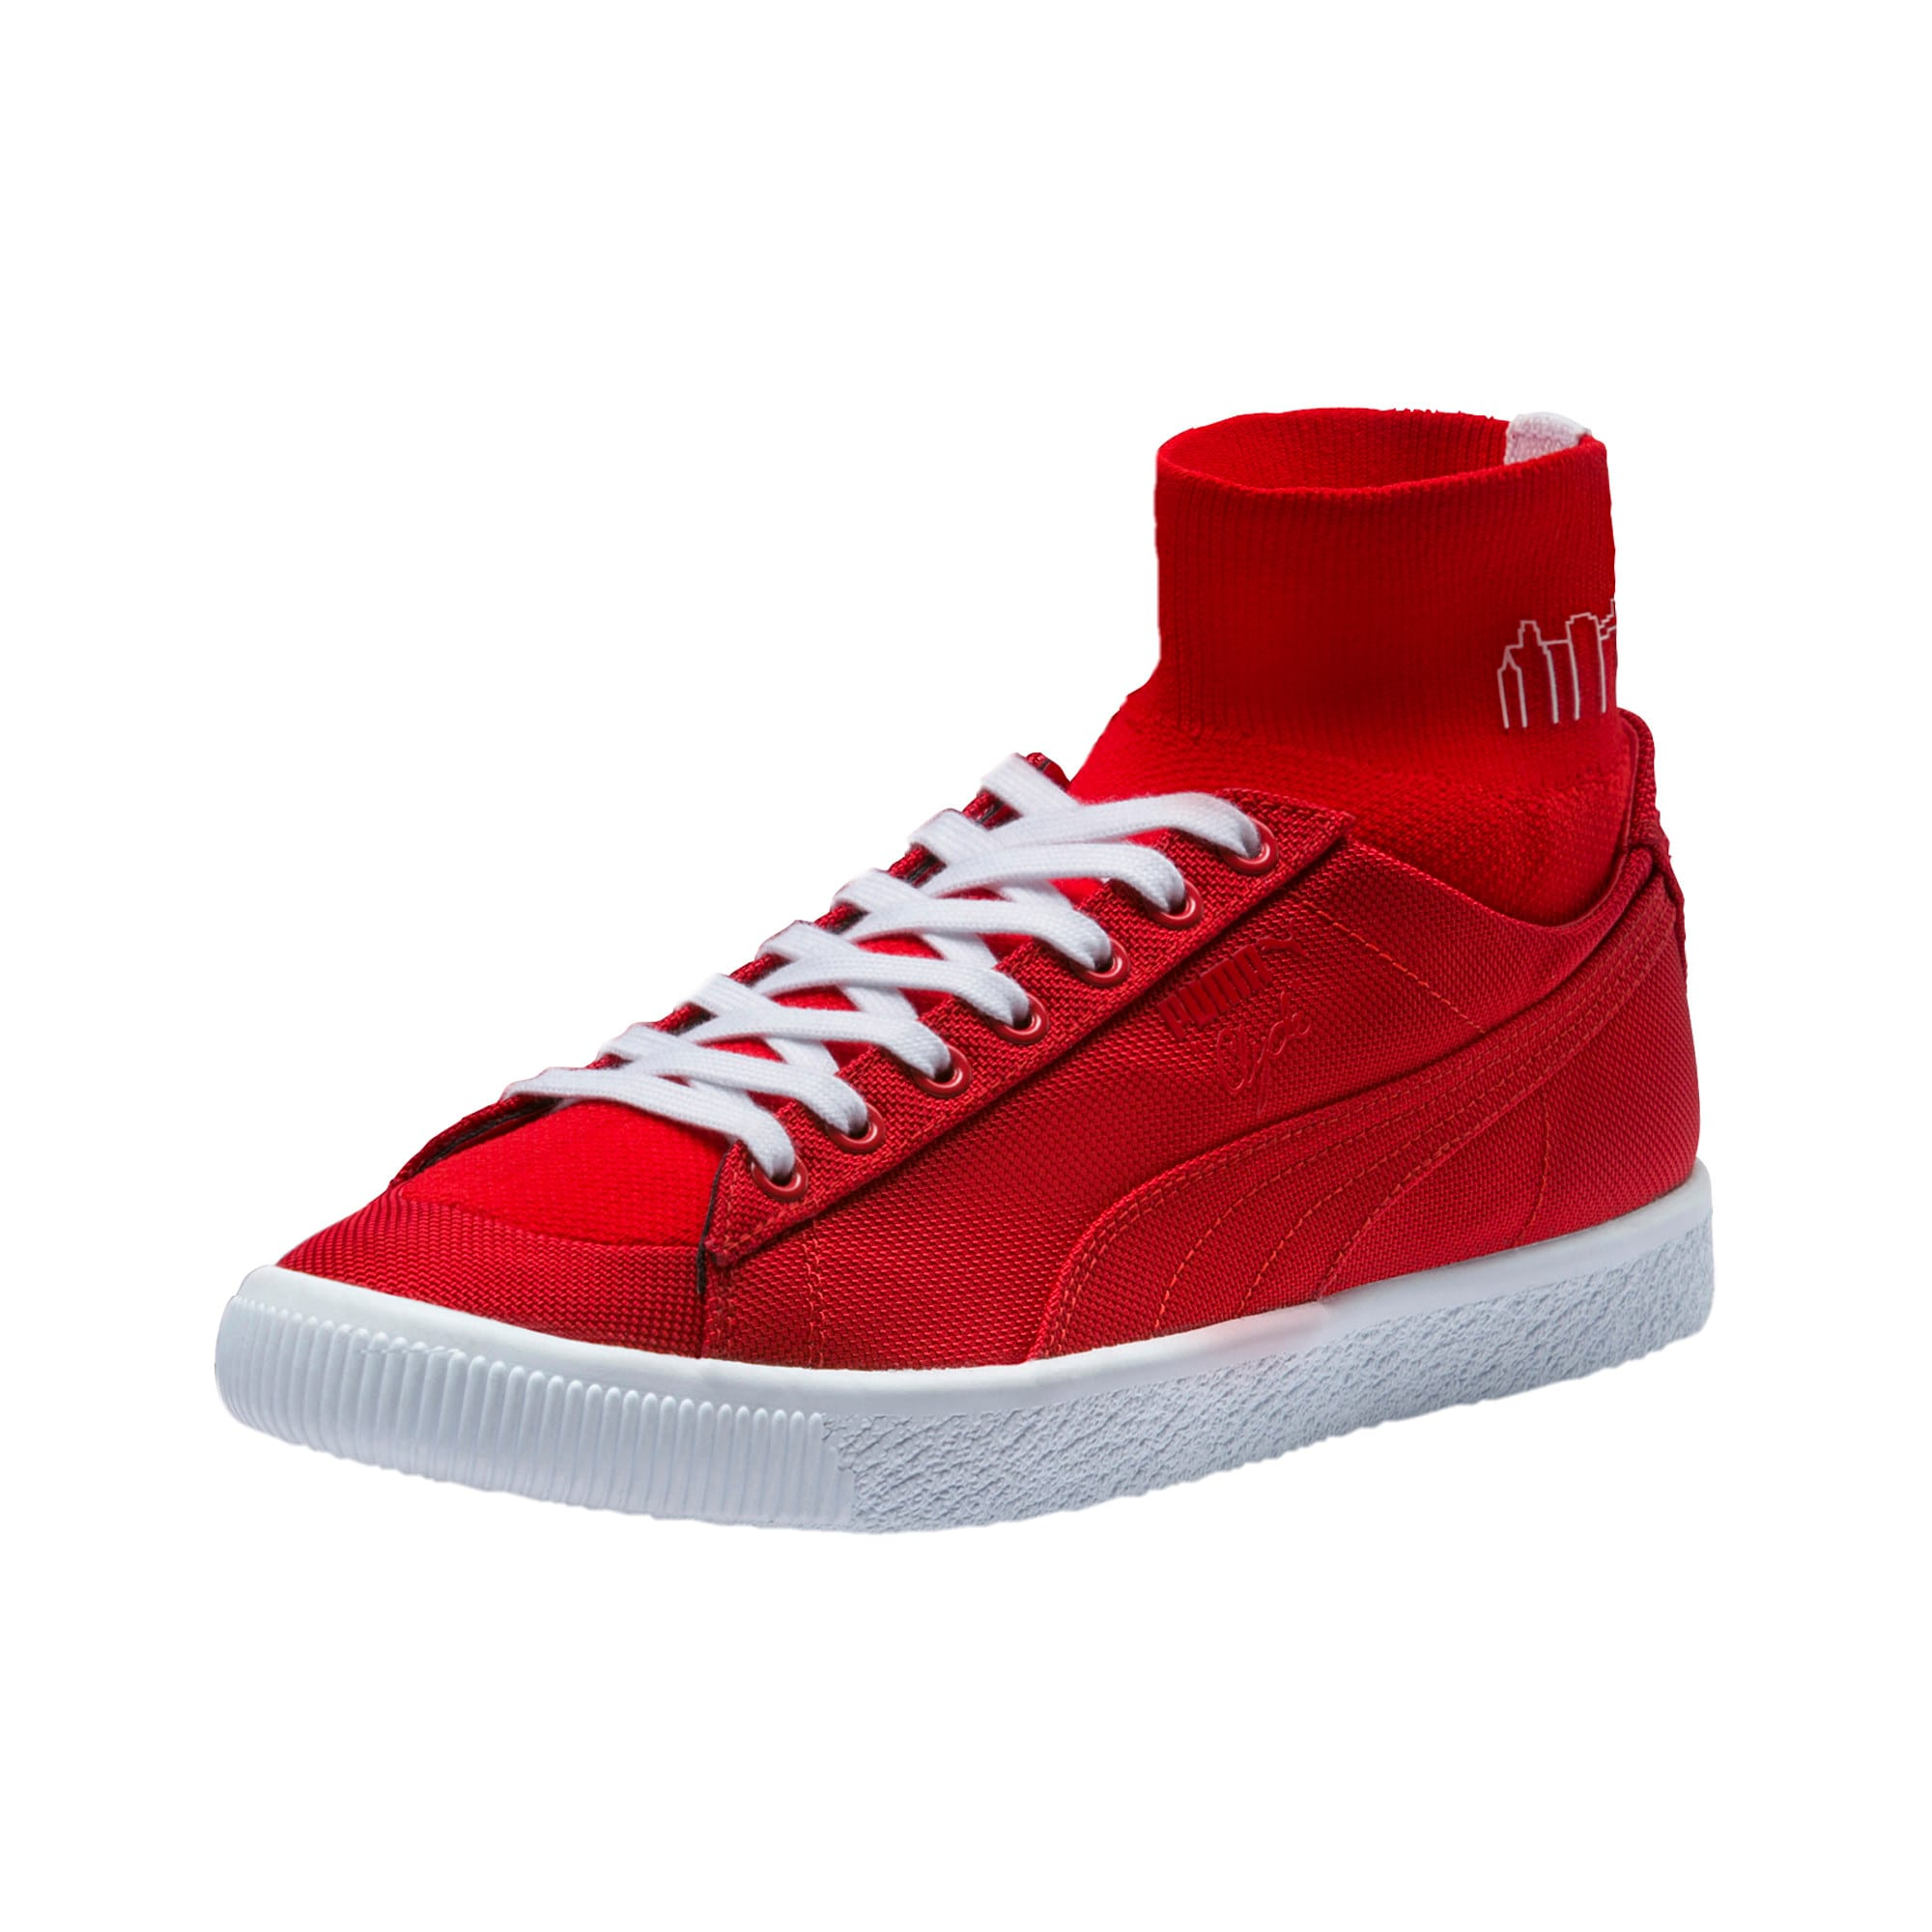 Thumbnail 1 of PUMA x MANHATTAN PORTAGE Clyde Sock Sneakers, High Risk Red-High Risk Red, medium